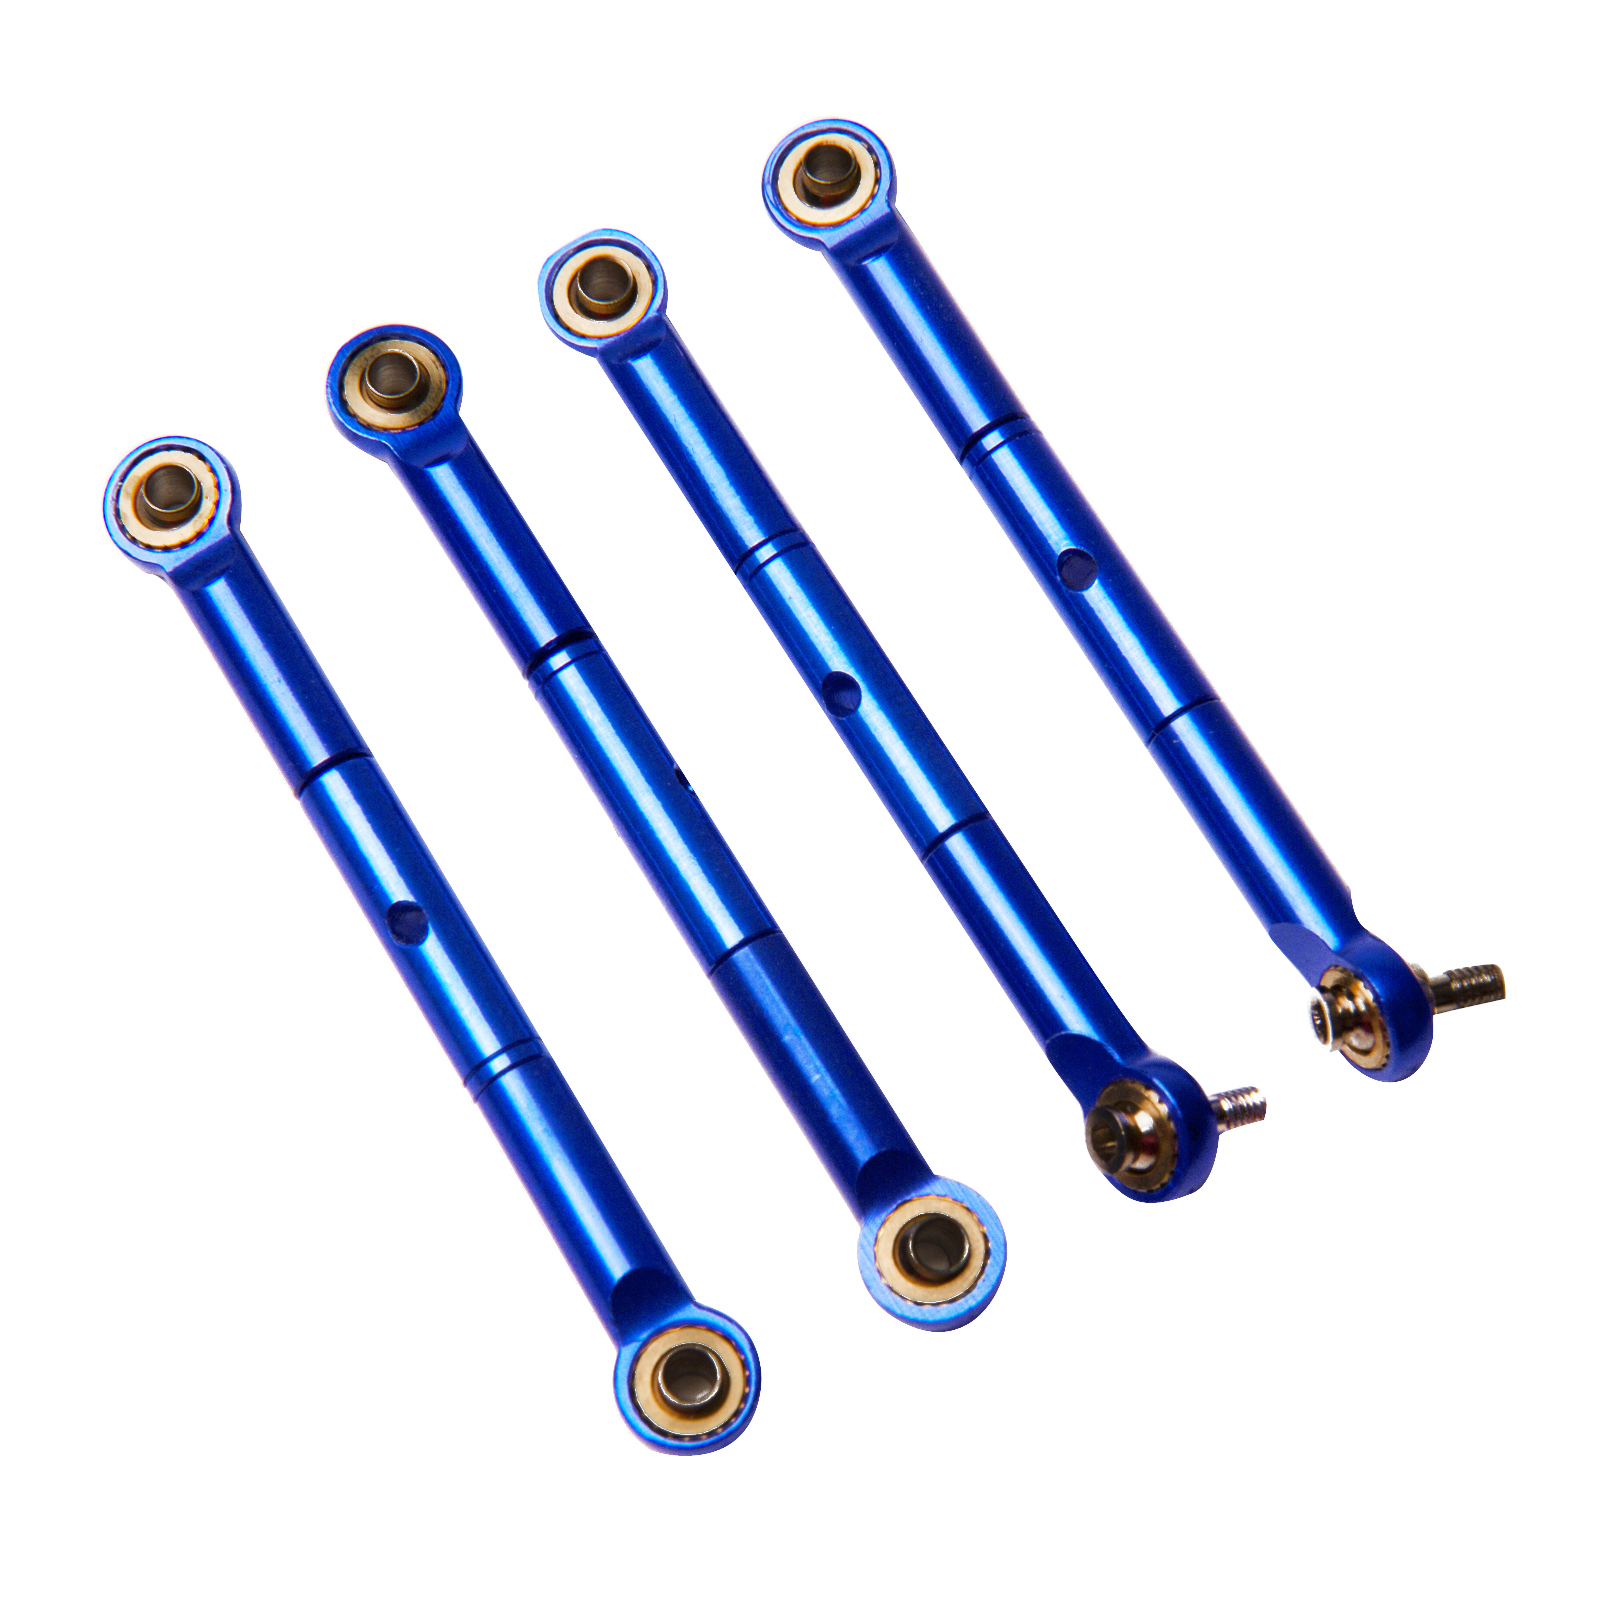 Traxxas Rally 1:16 Aluminum Alloy Front/Rear Adjustable Toe Link Hop Up Upgrade, Blue by Atomik RC - Replaces Traxxas Part 7038